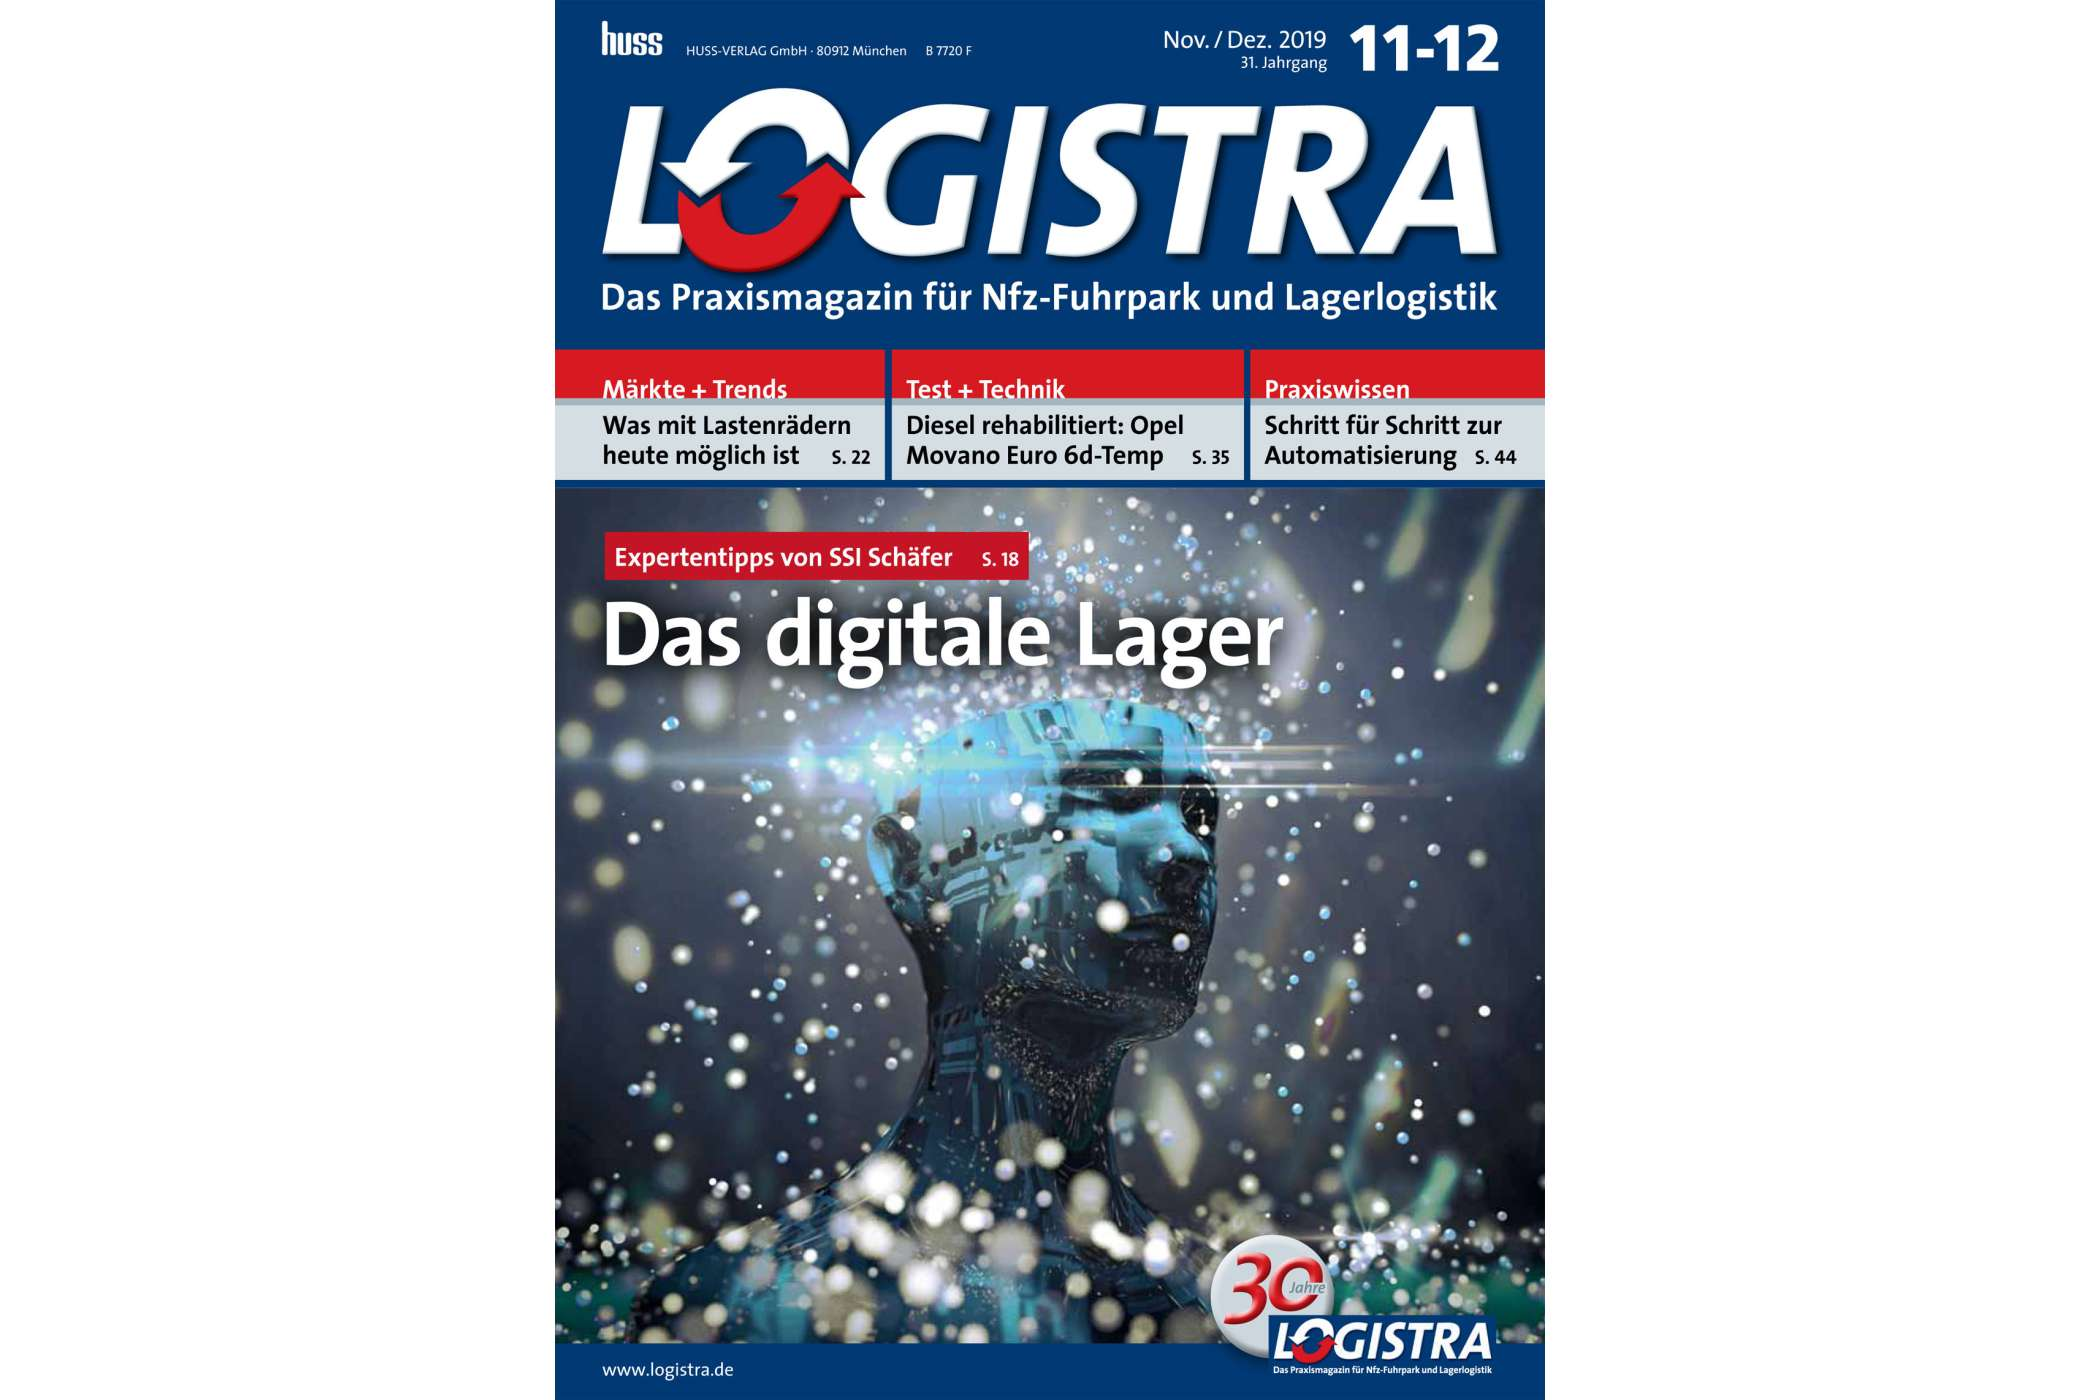 LOGISTRA Nov./Dez. 2019